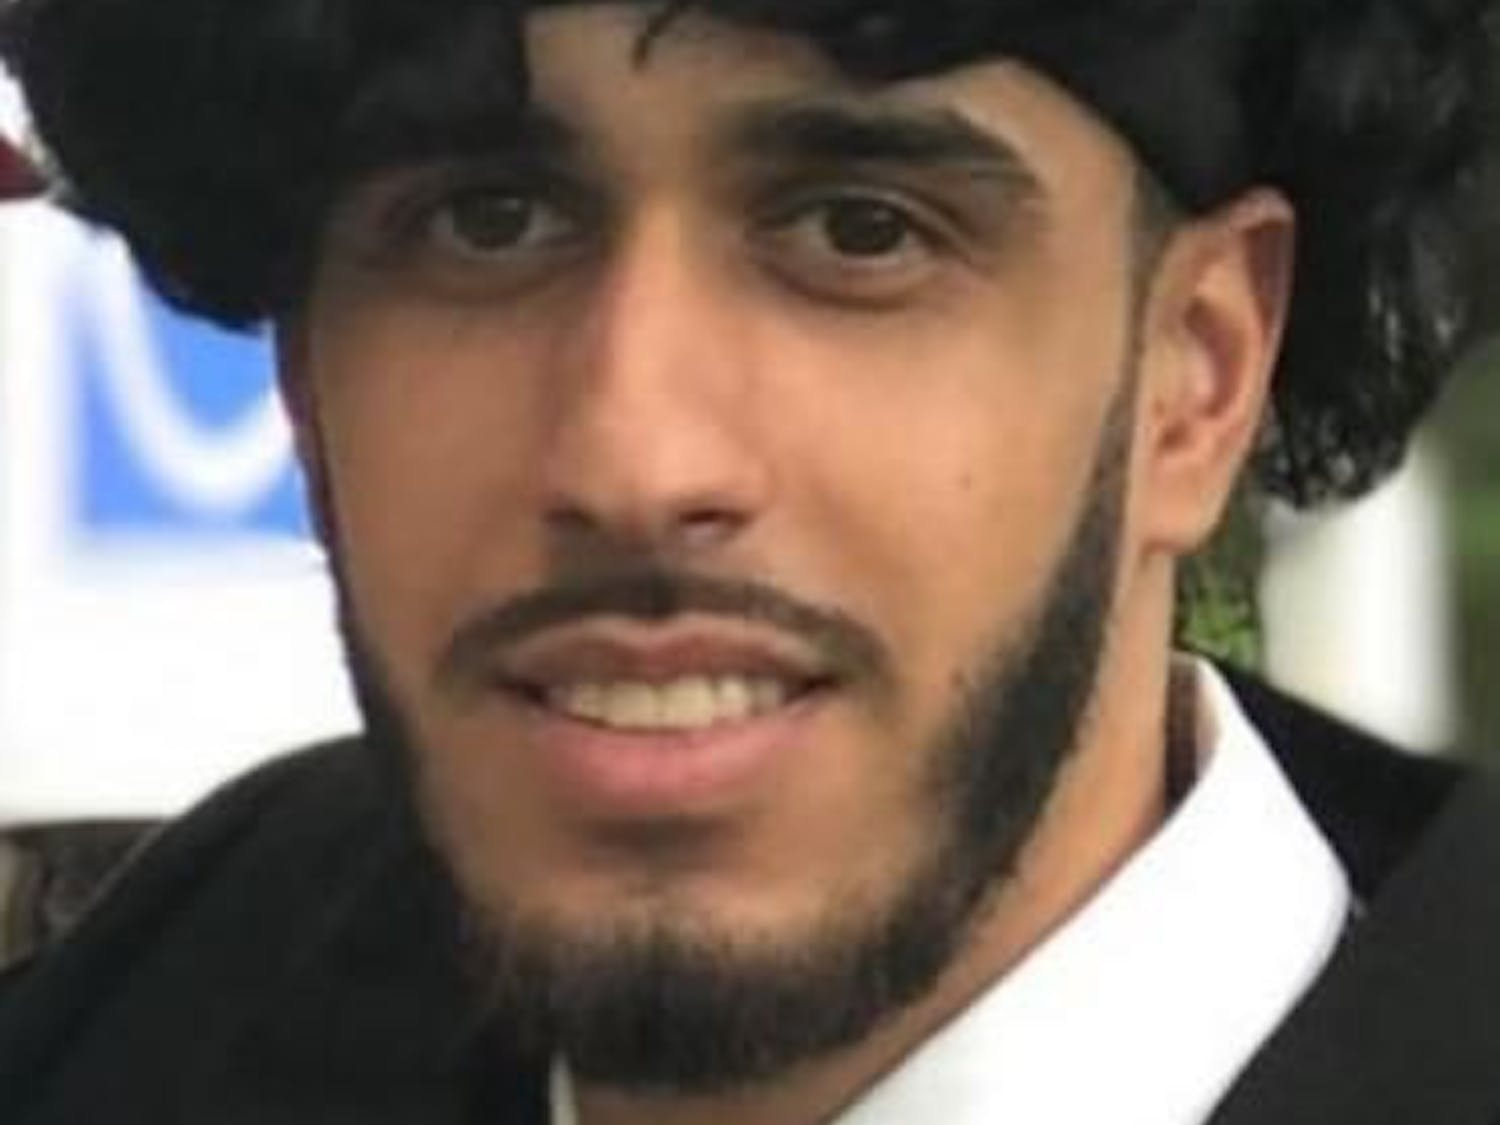 UF student Amin Taghikhani died Oct. 8 following a motorcycle crash on Oct. 4. A memorial service hosted by his family will take place Nov. 3 at the Baugham Center.